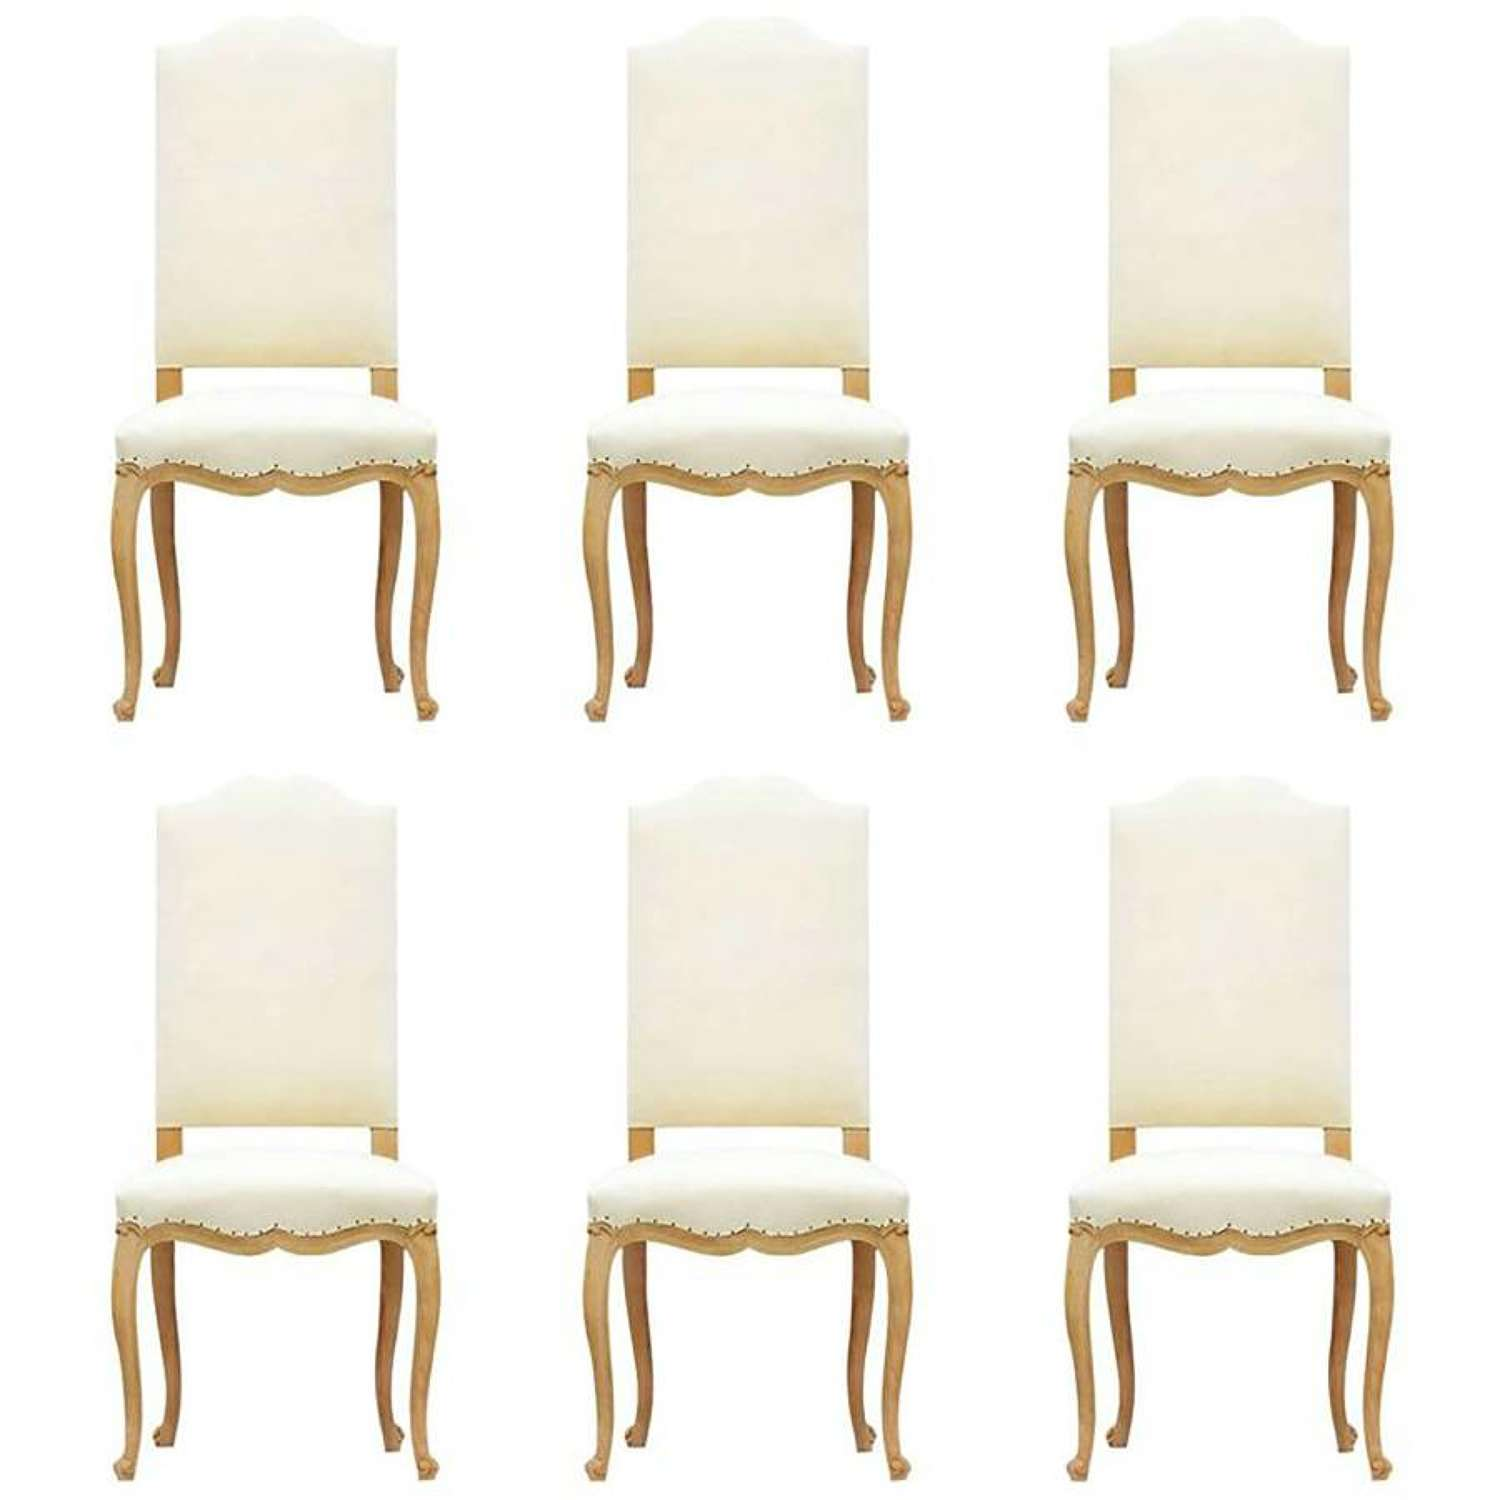 Six French Dining Chairs Louis Revival Upholstered to Metis Linen or Recover